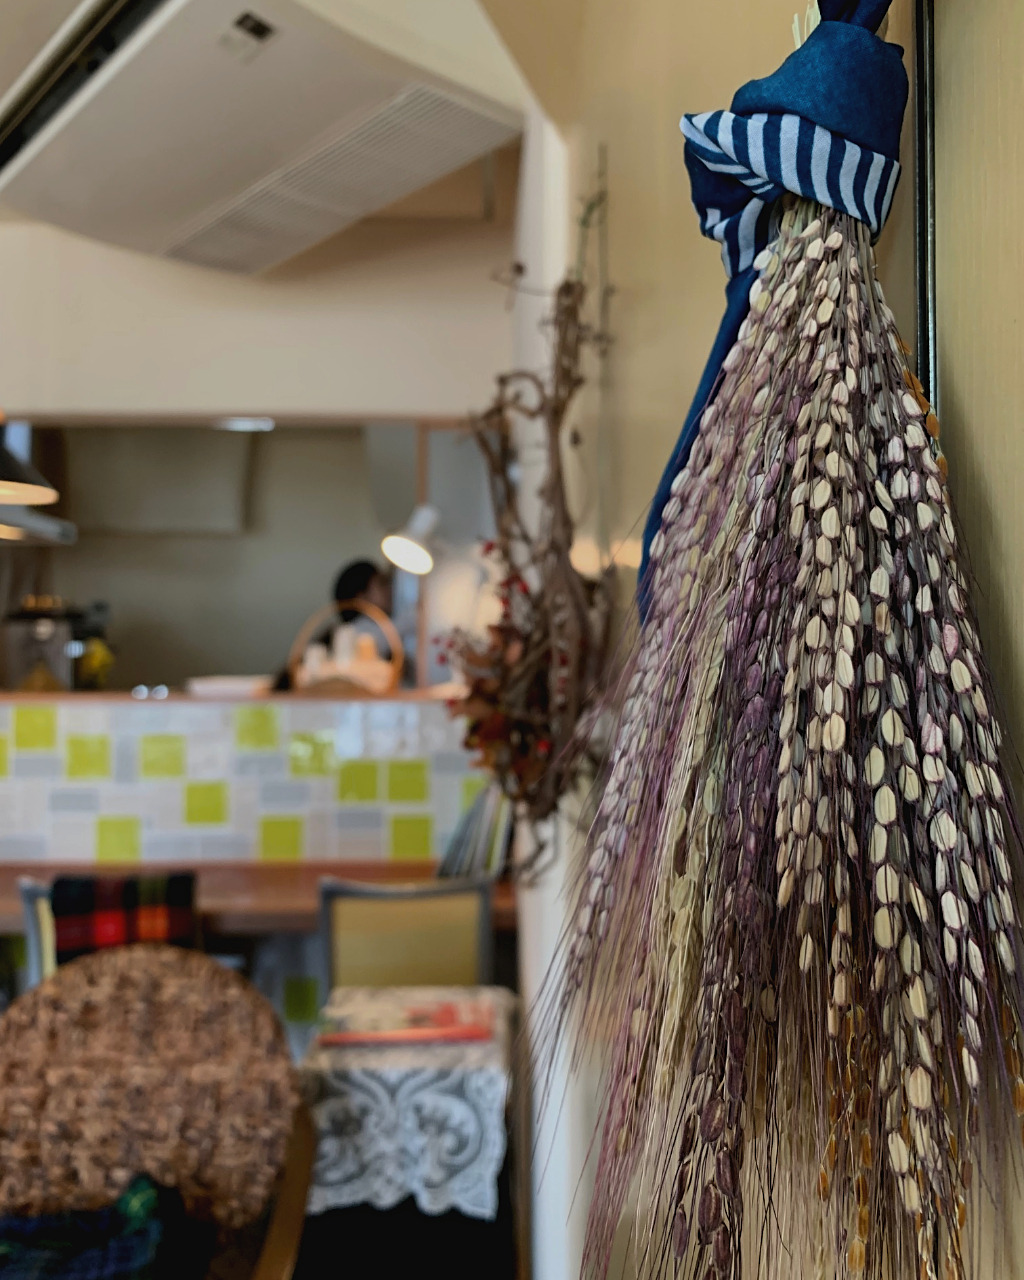 Dried buff and dark purple grains hang from the wall at Ihanoha Vegan Cafe in Kanazawa, Japan